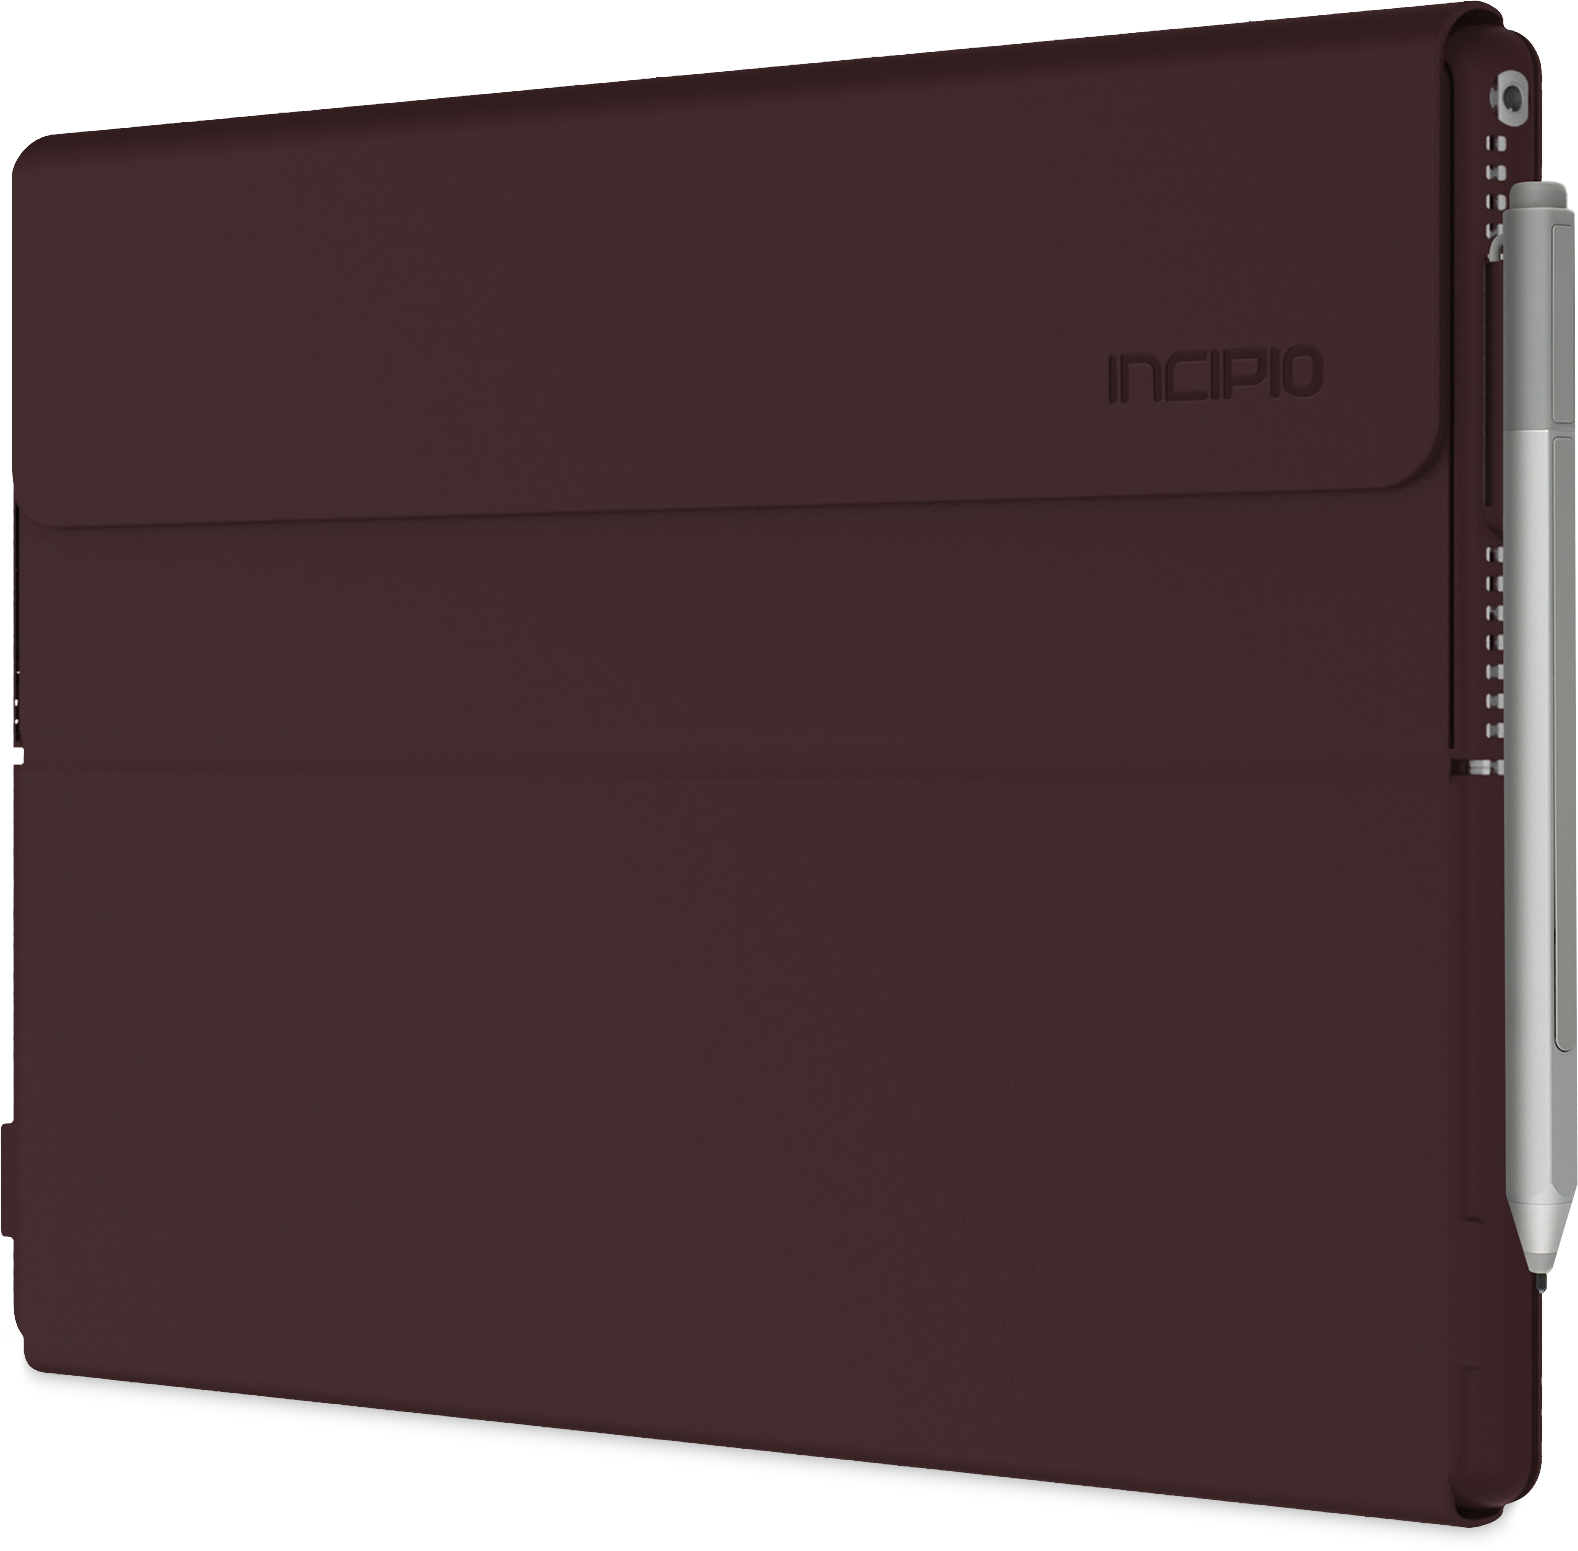 incipio-faraday-slim-folio-for-surface-pro-a-burgundy